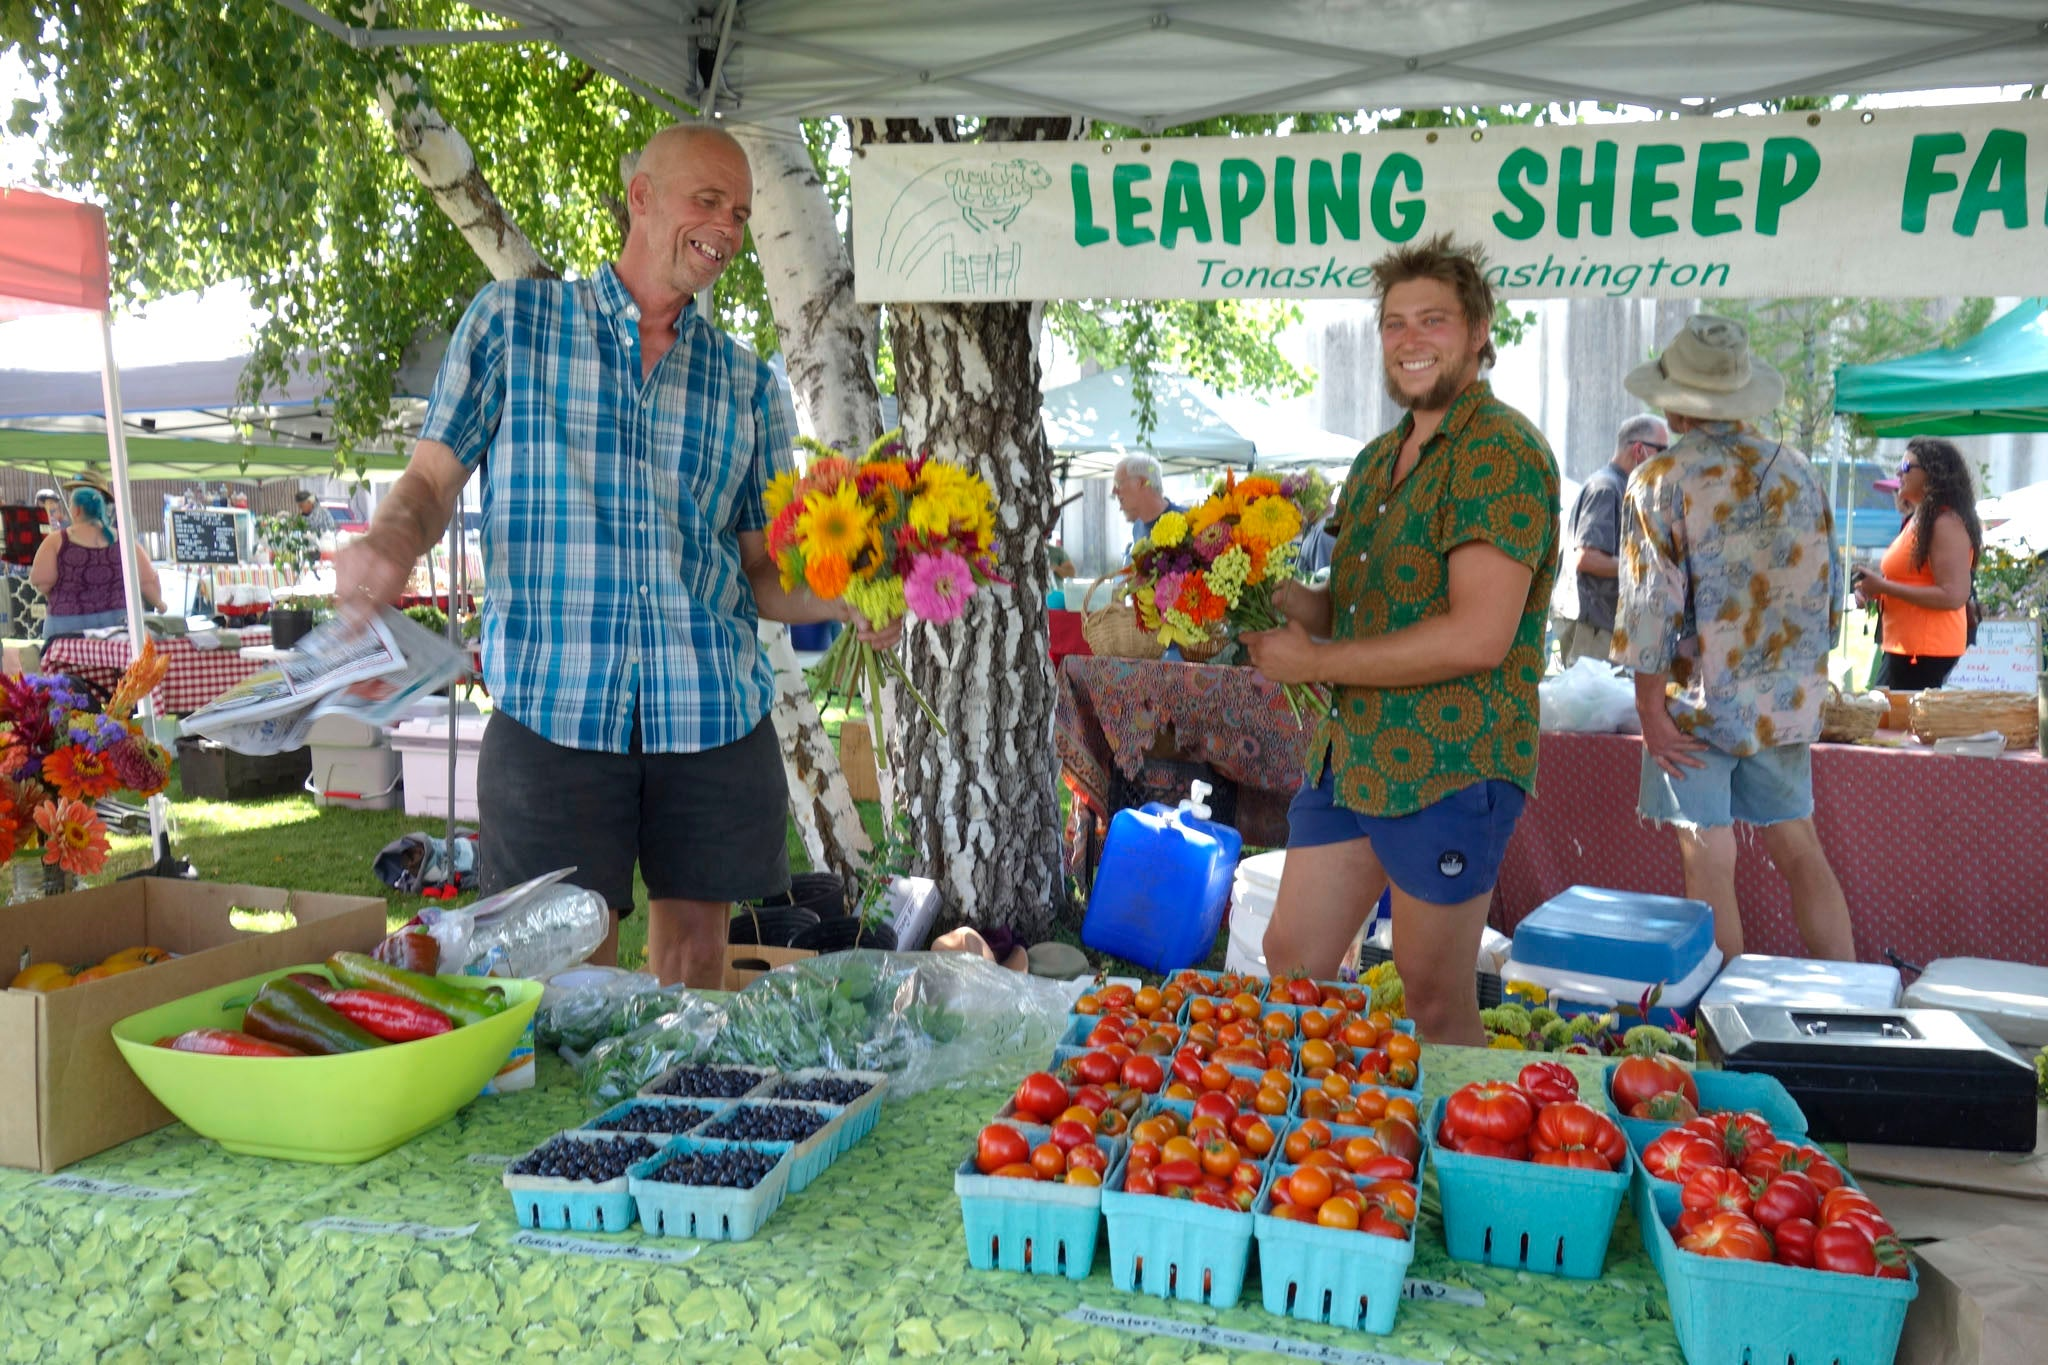 Ton and Bodie of Leaping Sheep Farm at the Tonasket Farmers Market